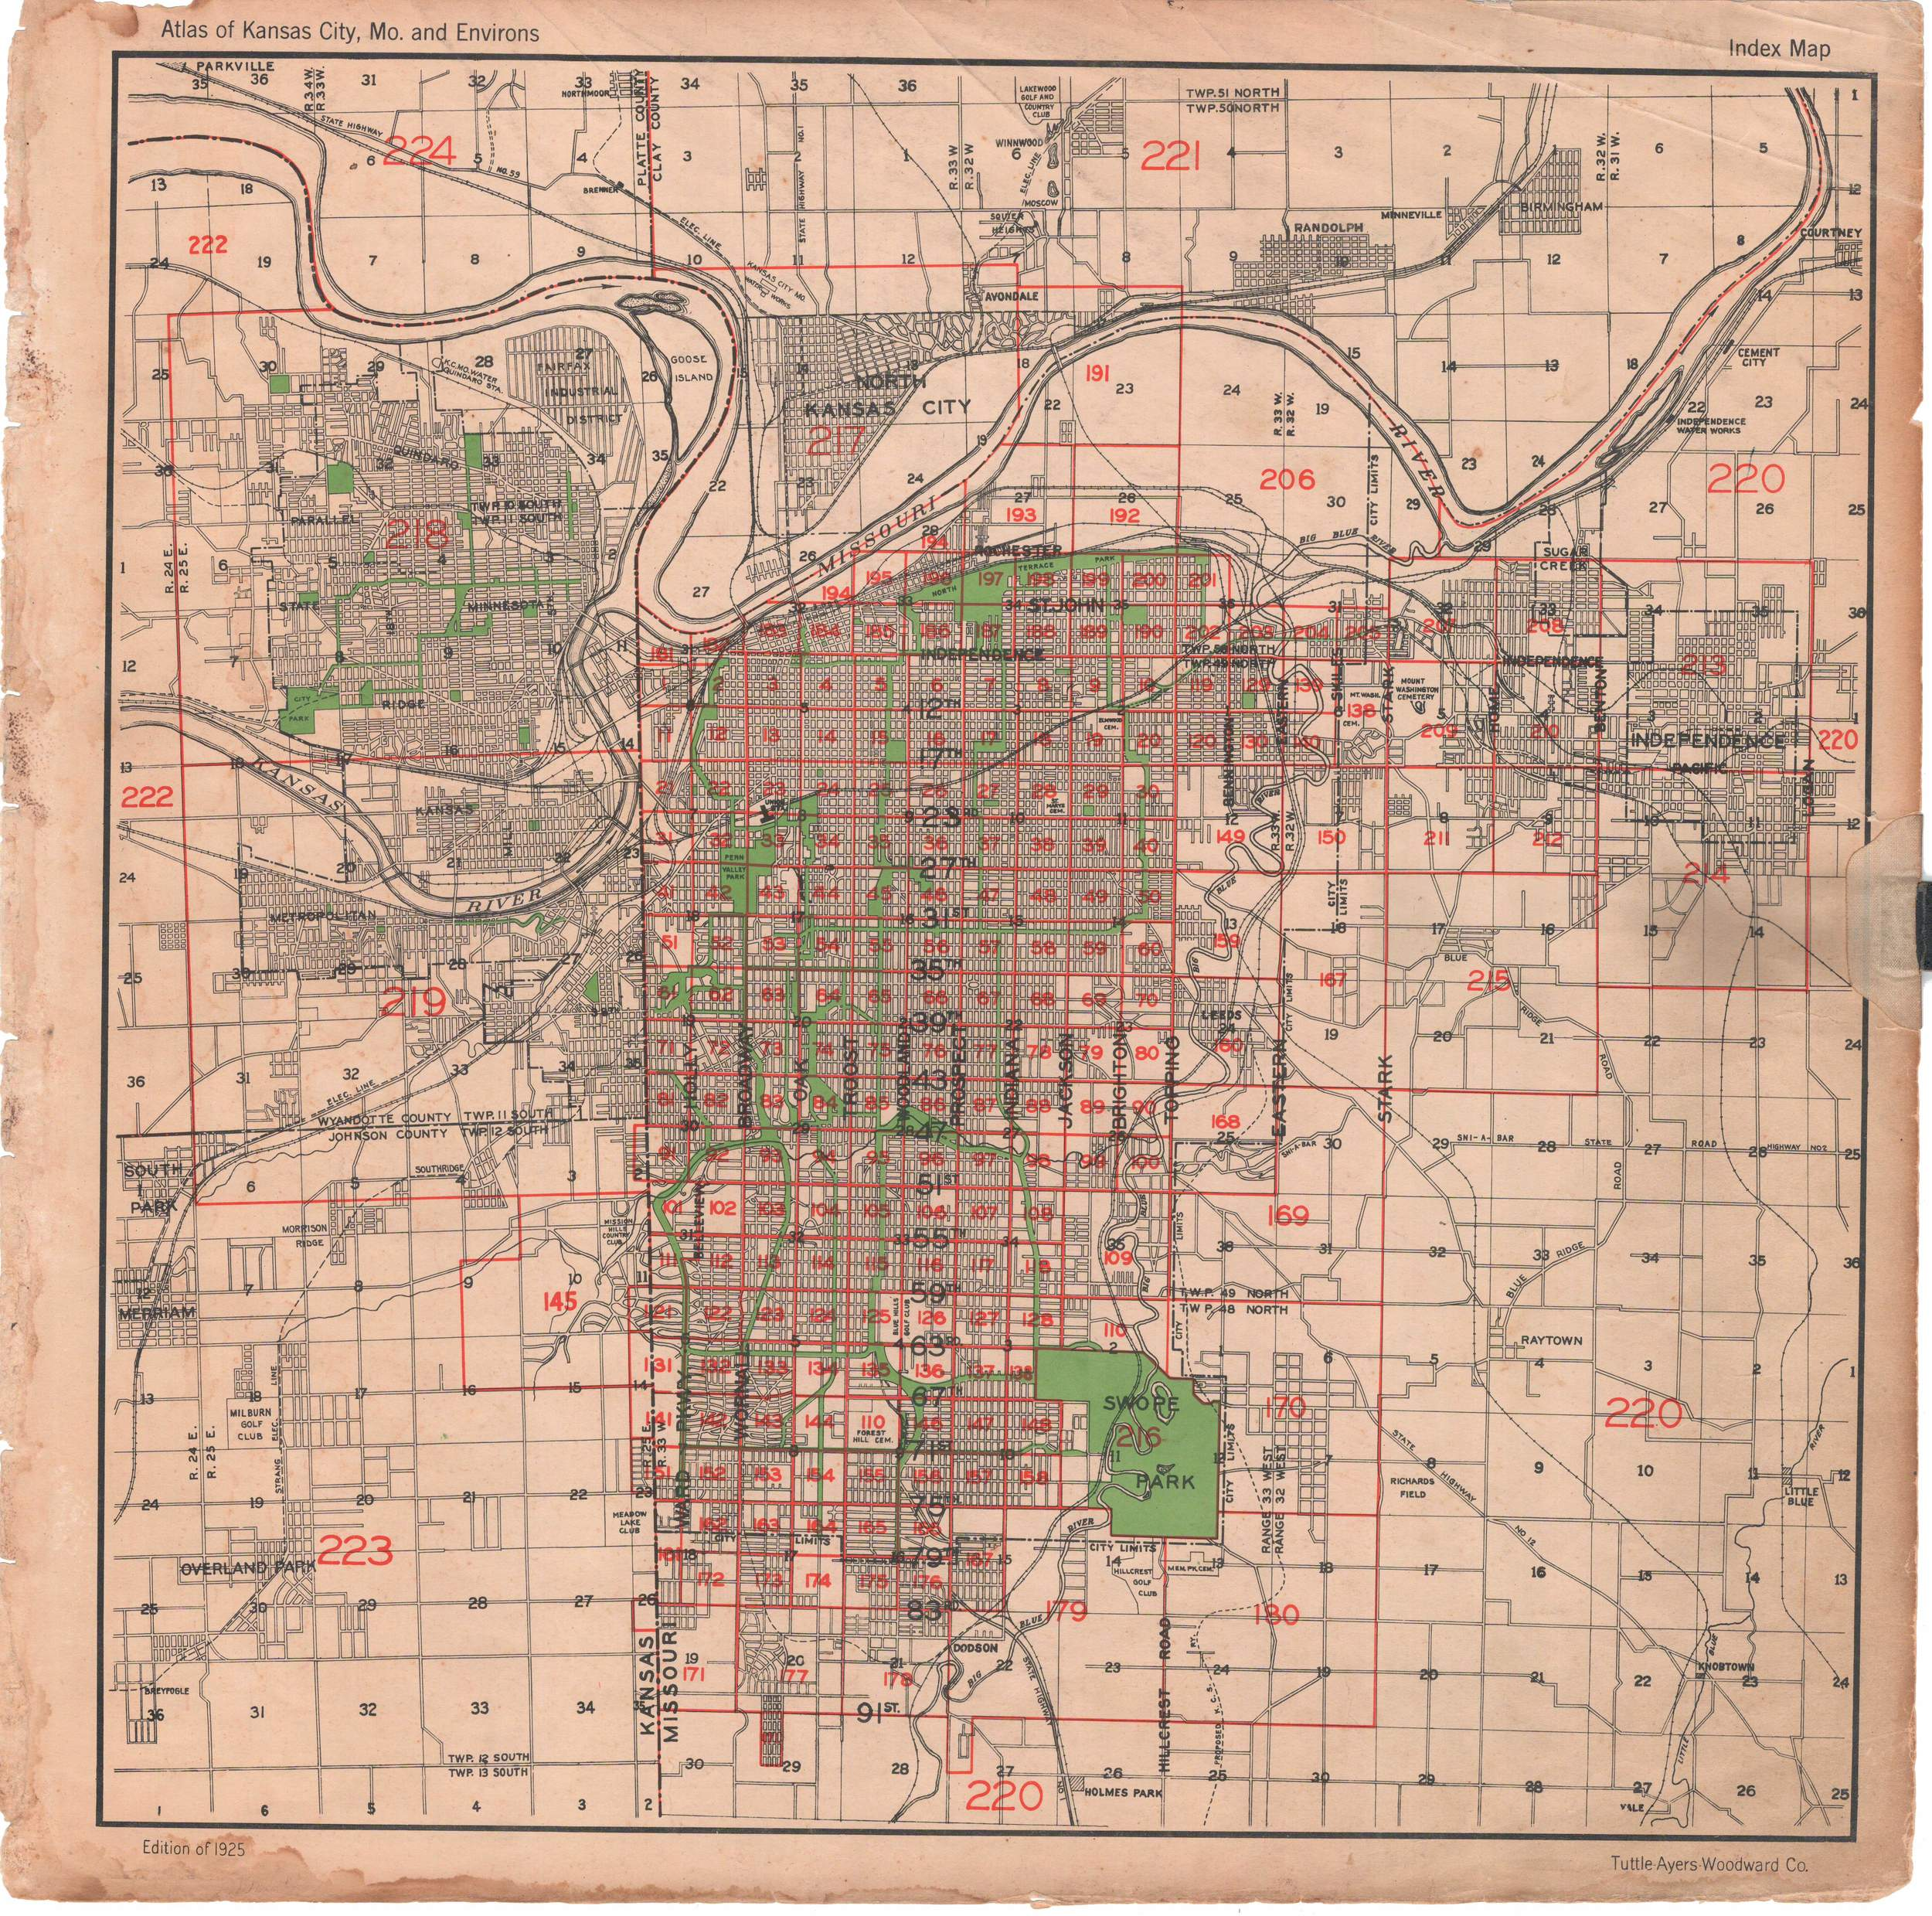 1925 TUTTLE_AYERS_Index_Map.JPG